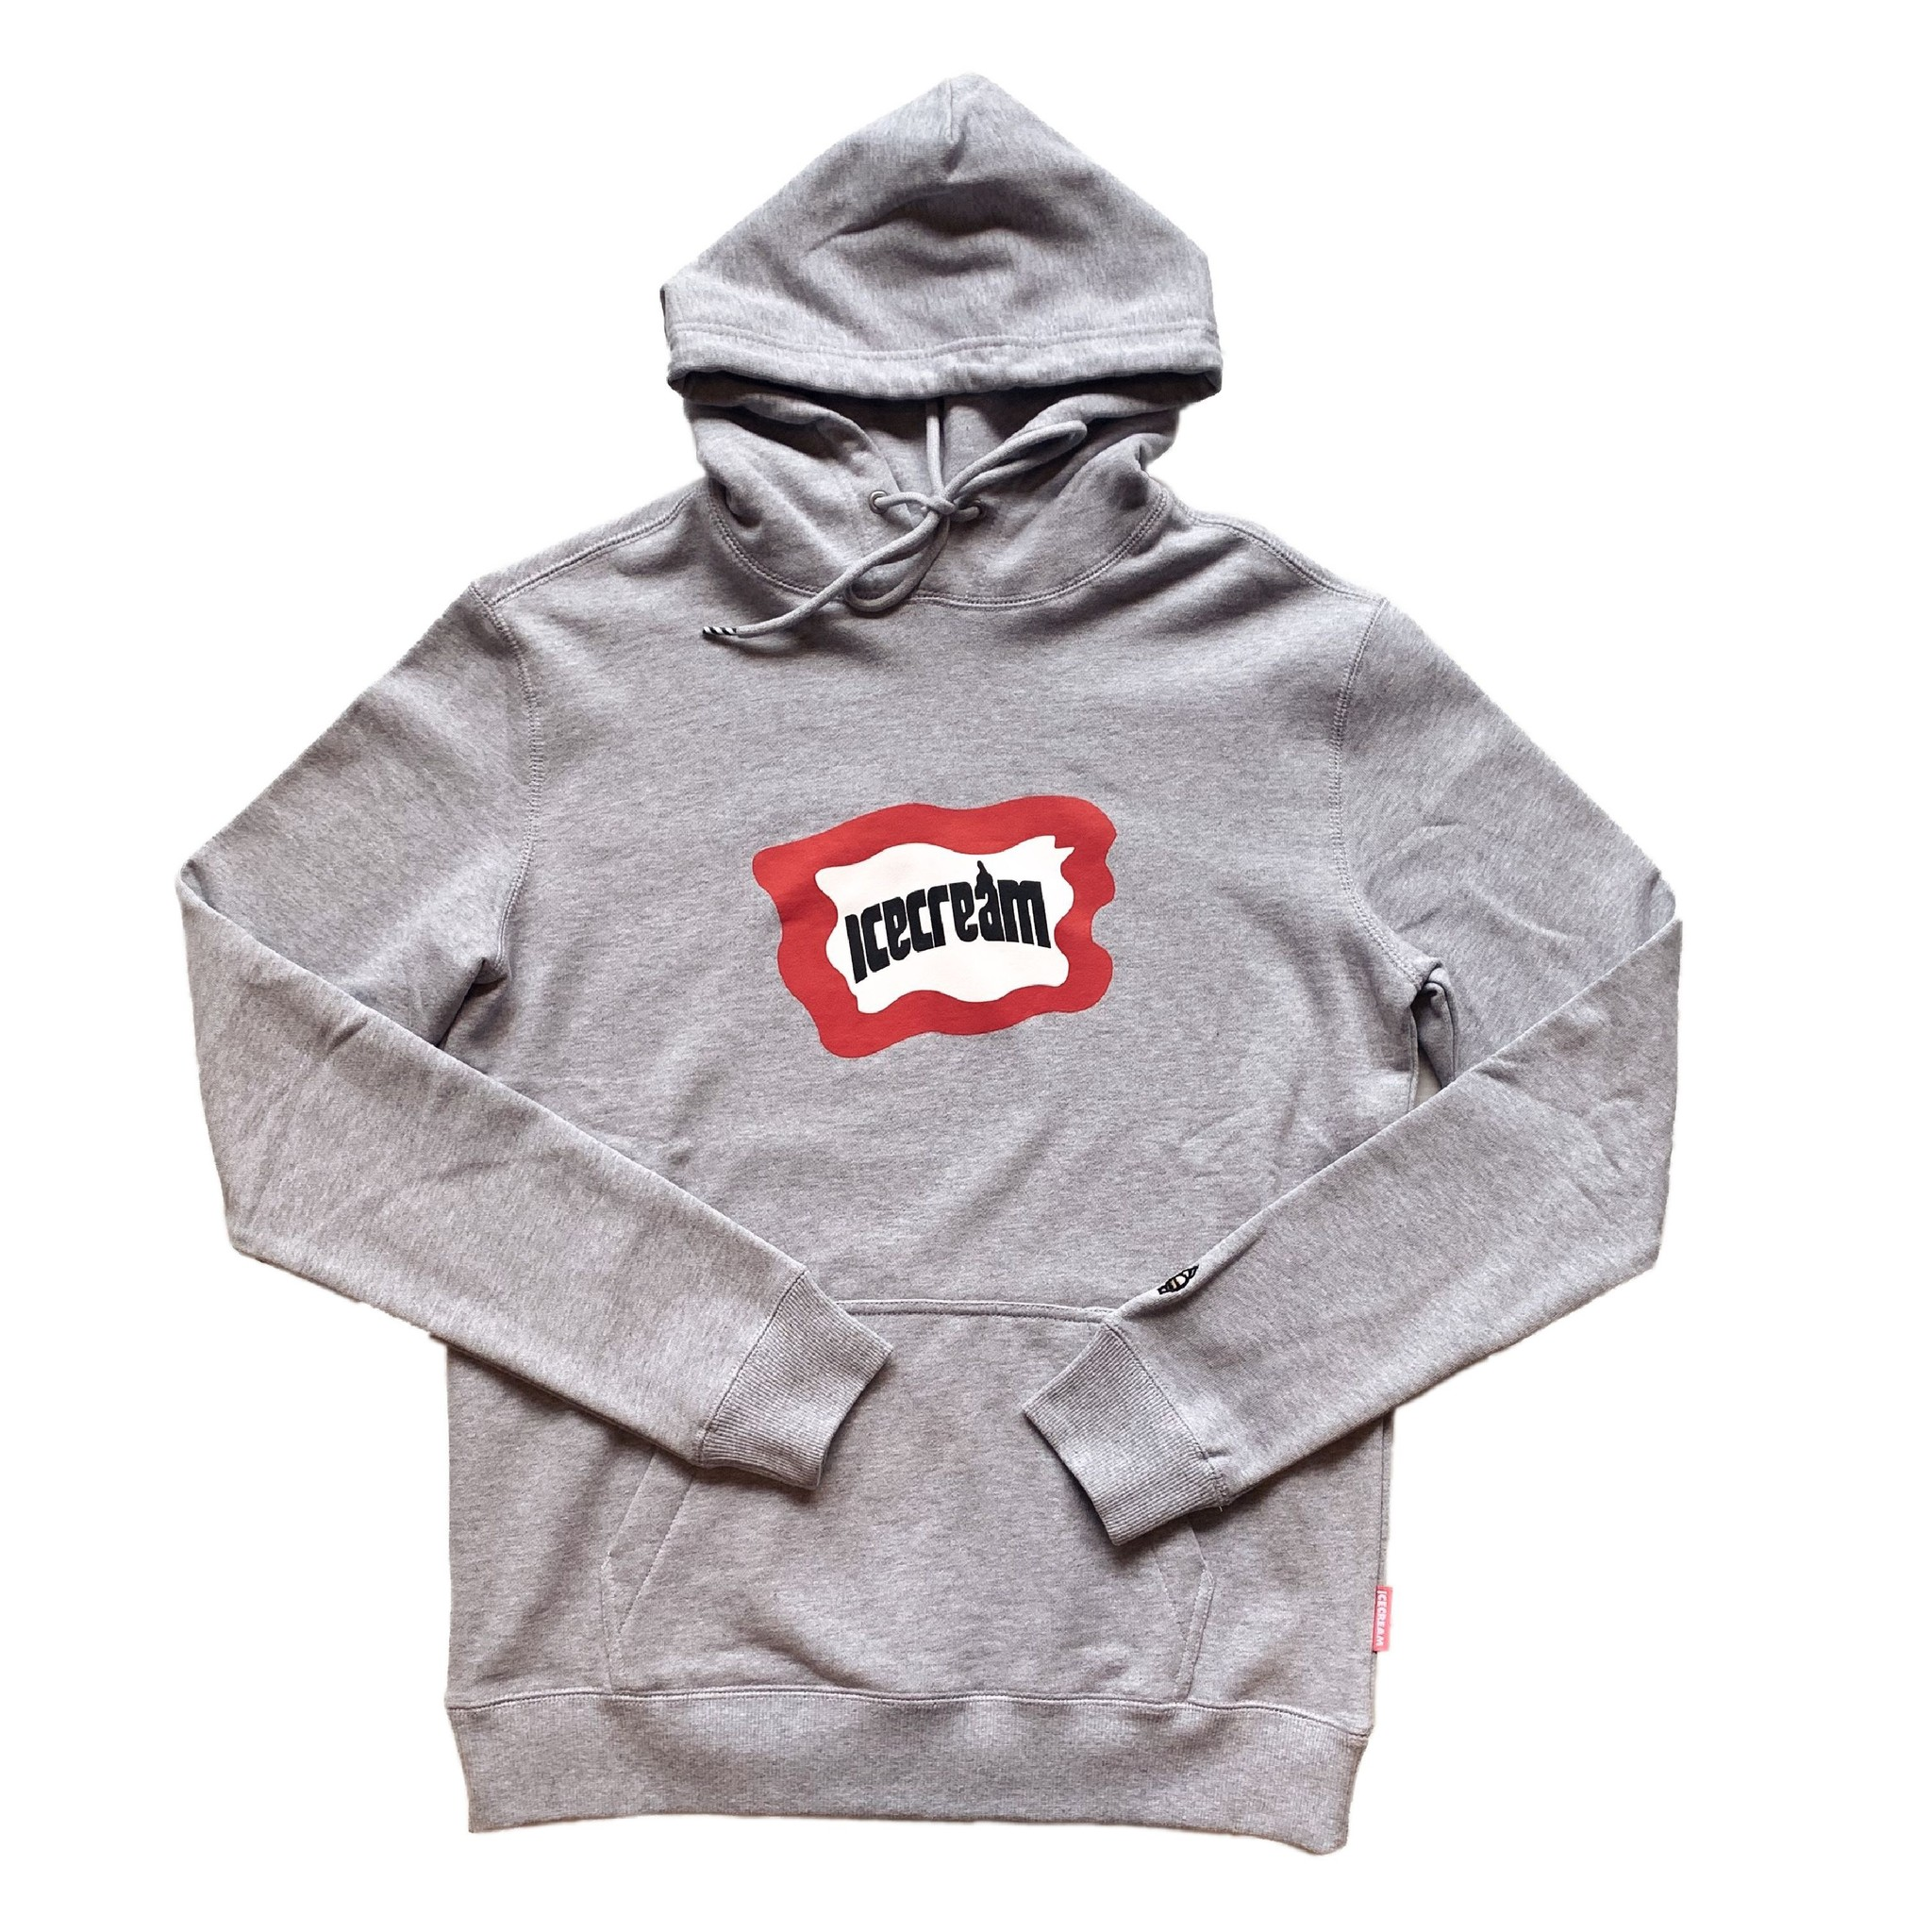 Icecream Icecream Timeless Hoody Grey